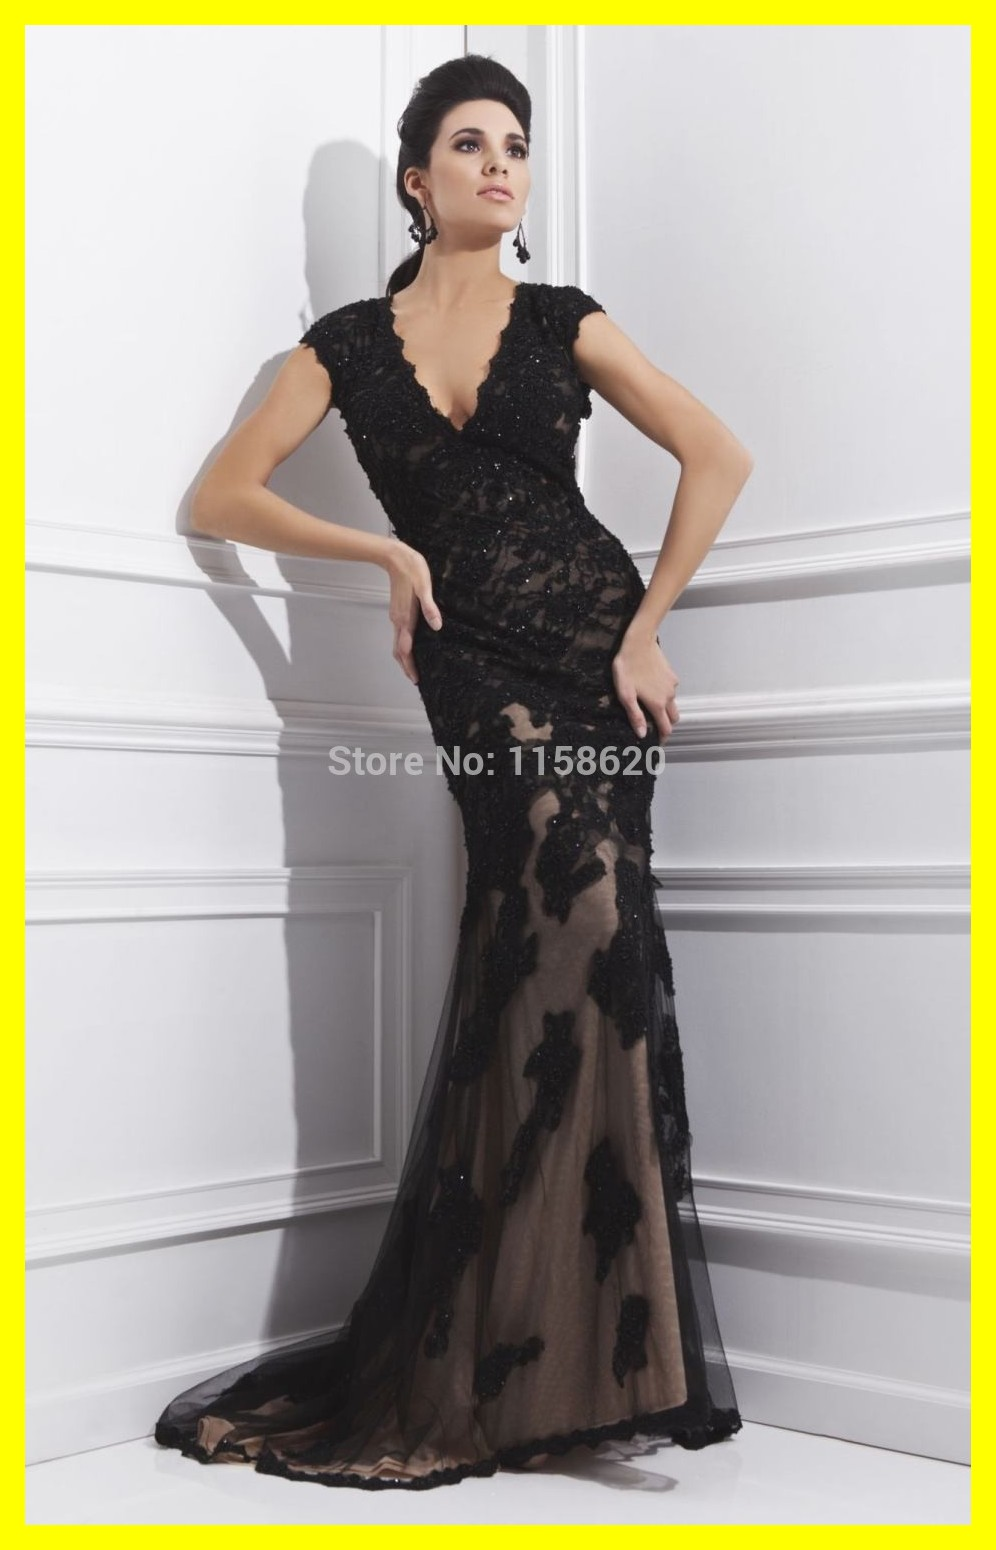 Designer evening dresses uk formal dresses Plus size designer clothes uk